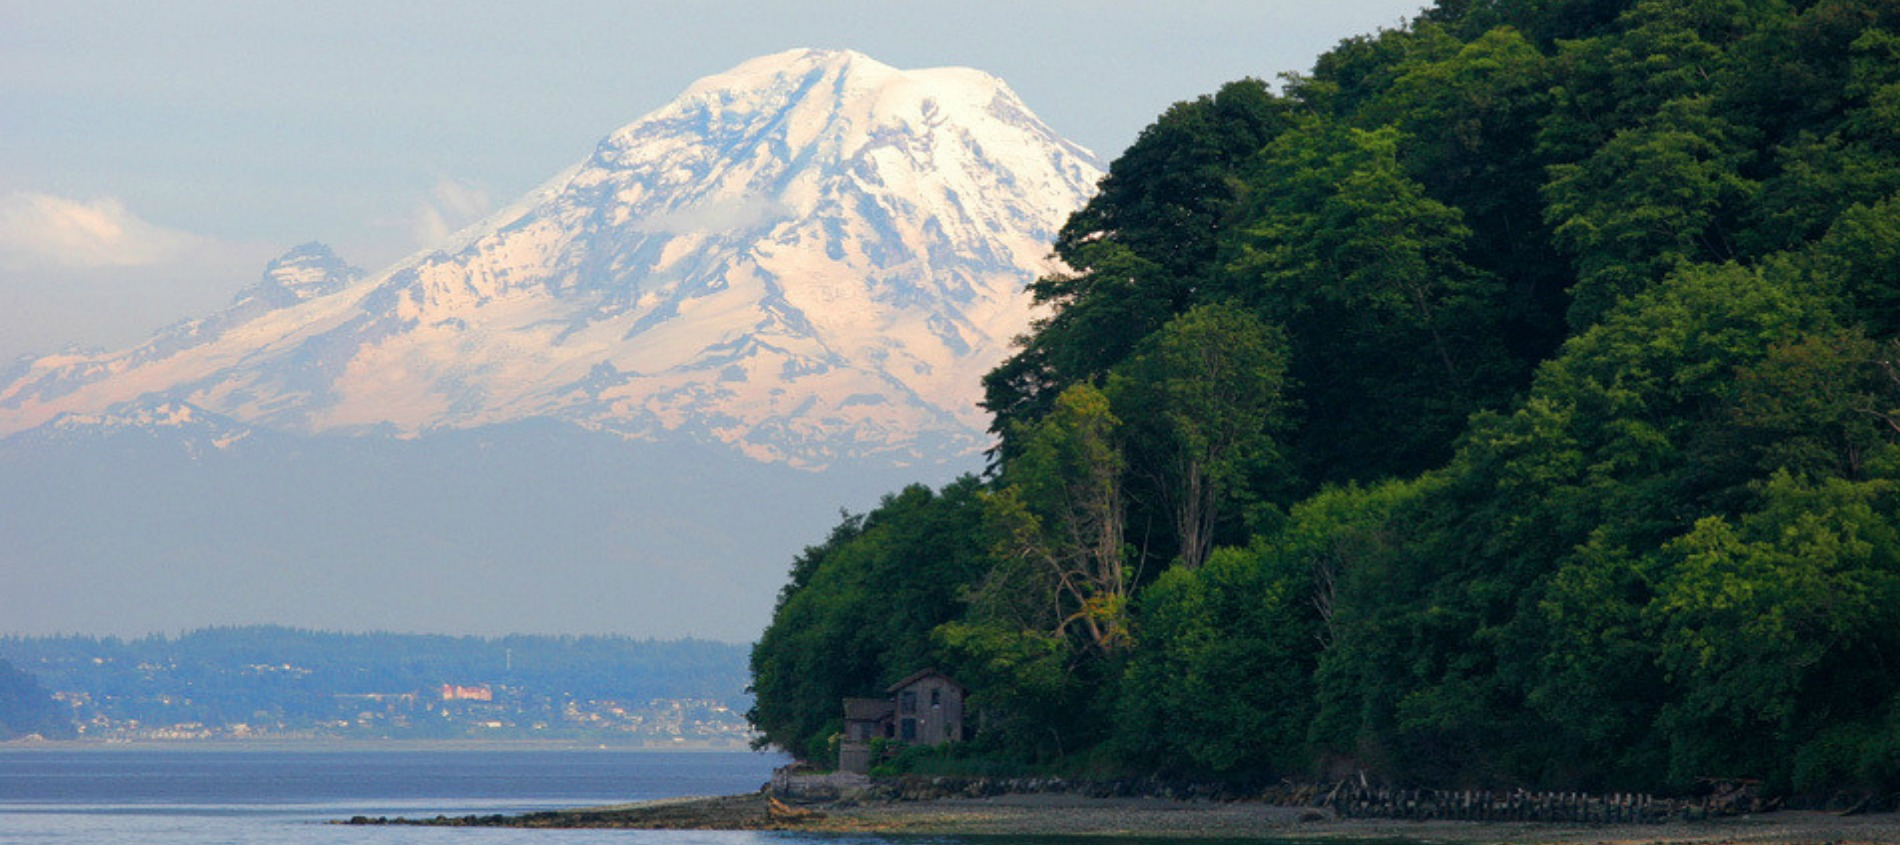 View of mountain and forest from Vashon Island in Seattle, WA